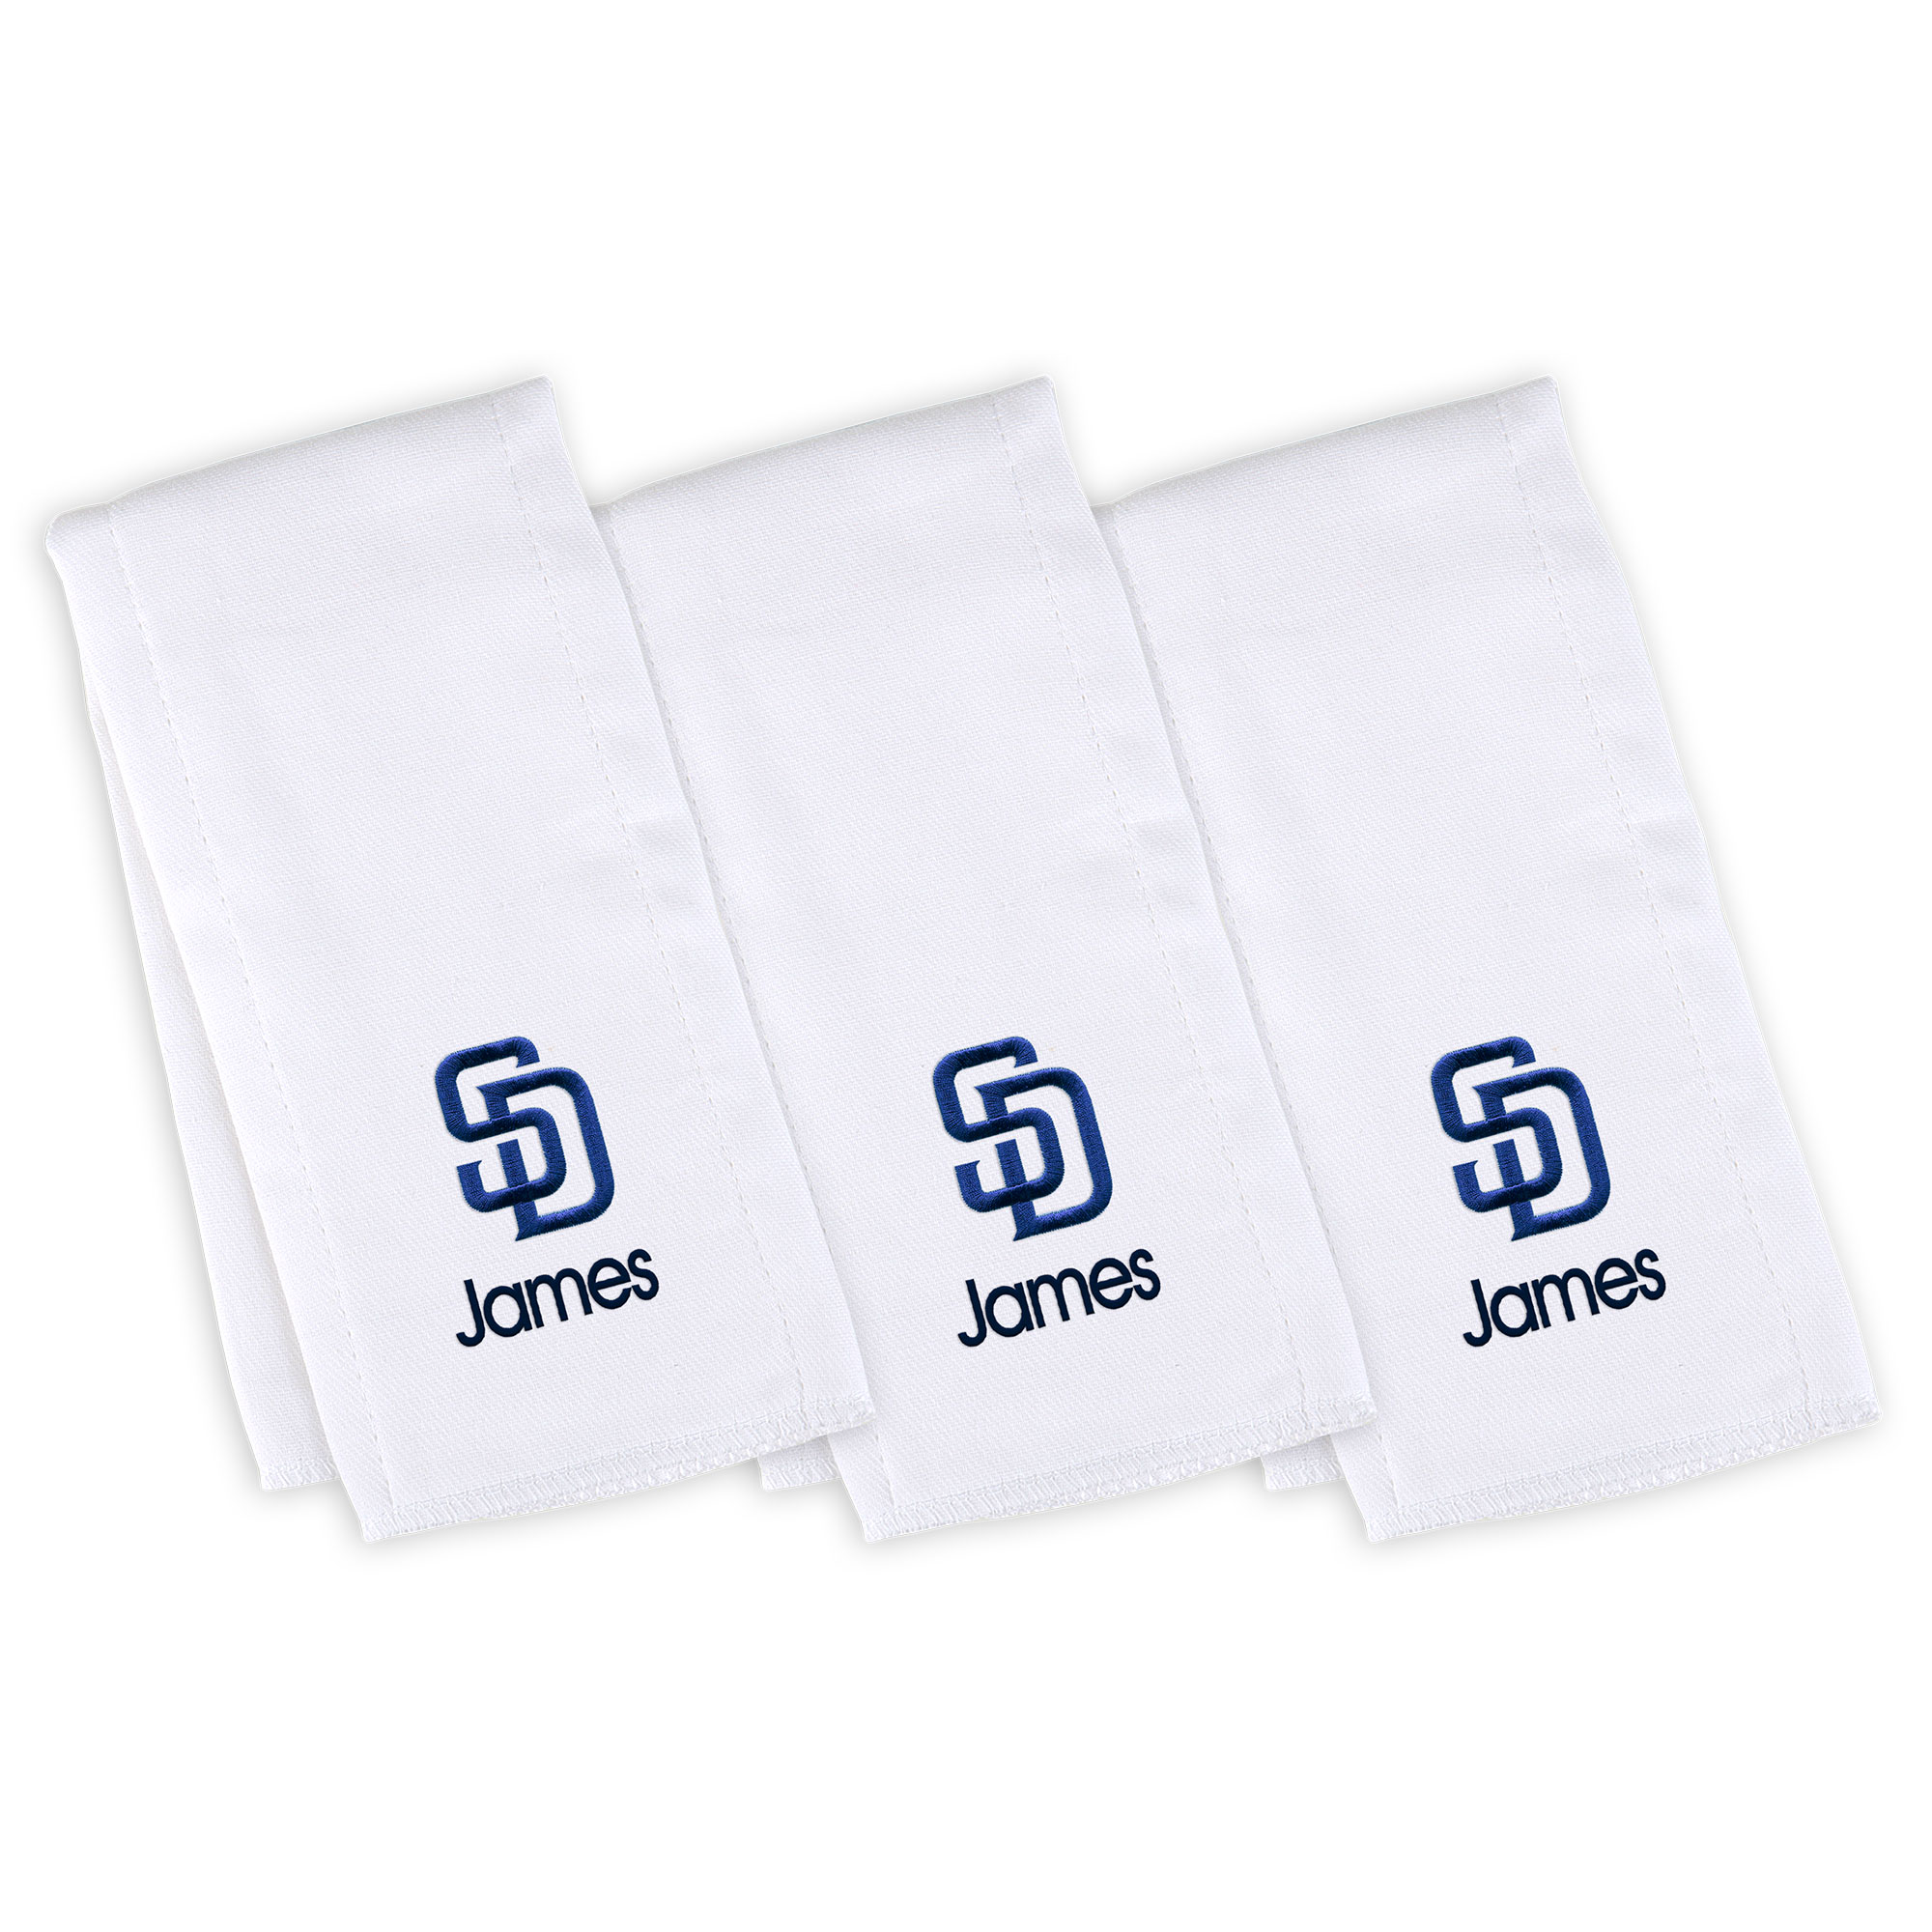 San Diego Padres Infant Personalized Burp Cloth 3-Pack - White